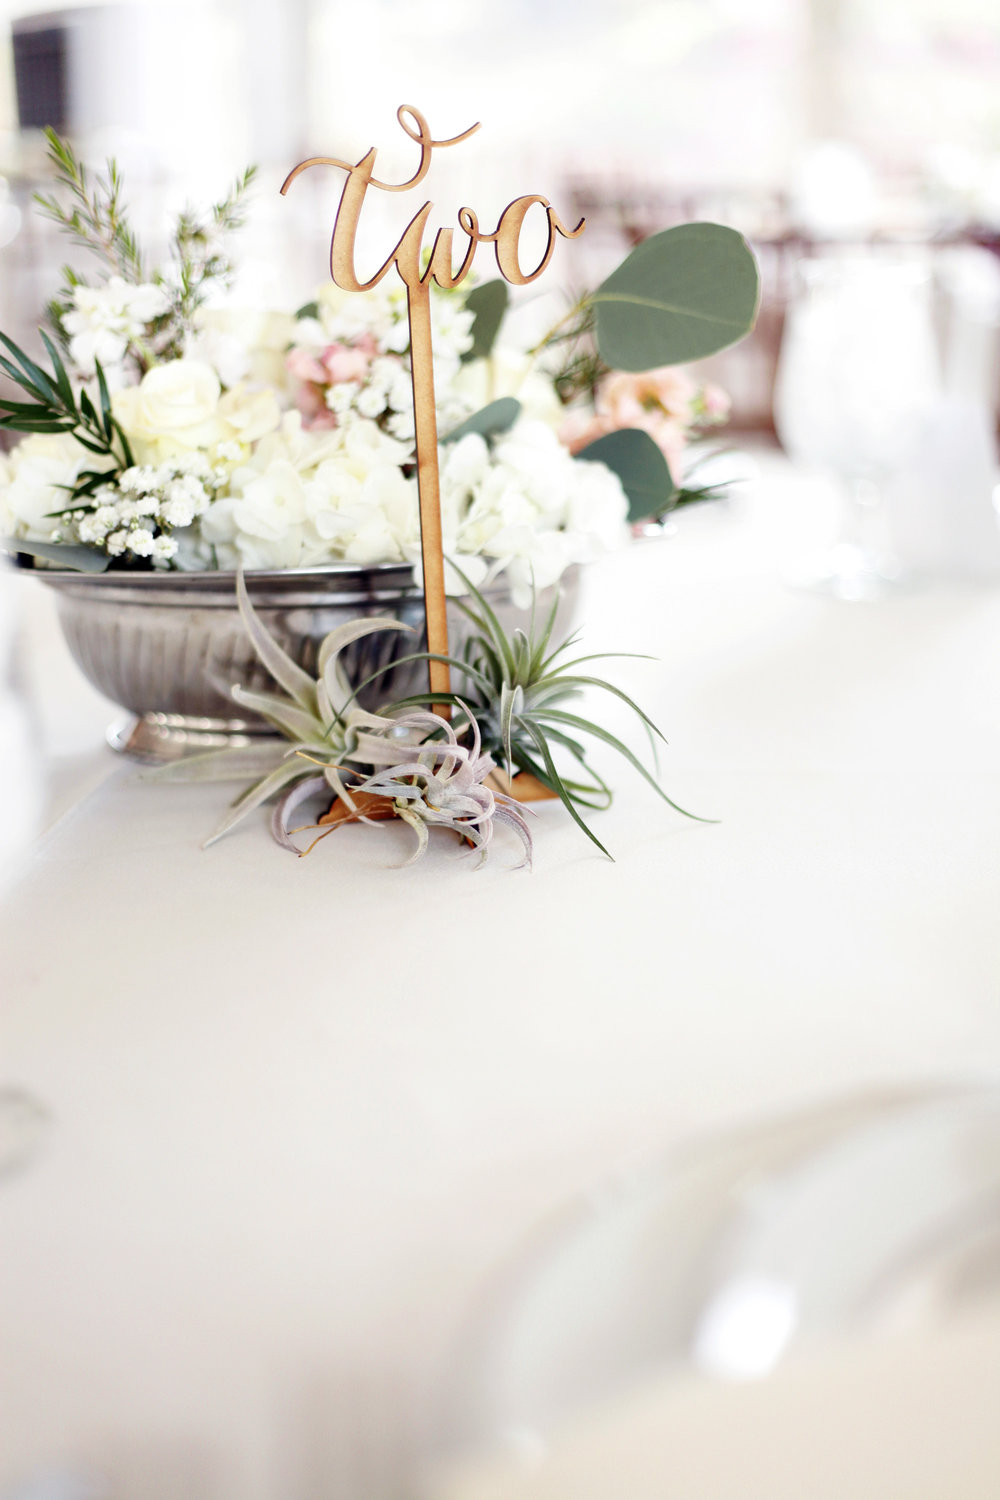 Medium Seasonal Centerpiece with Air Plants